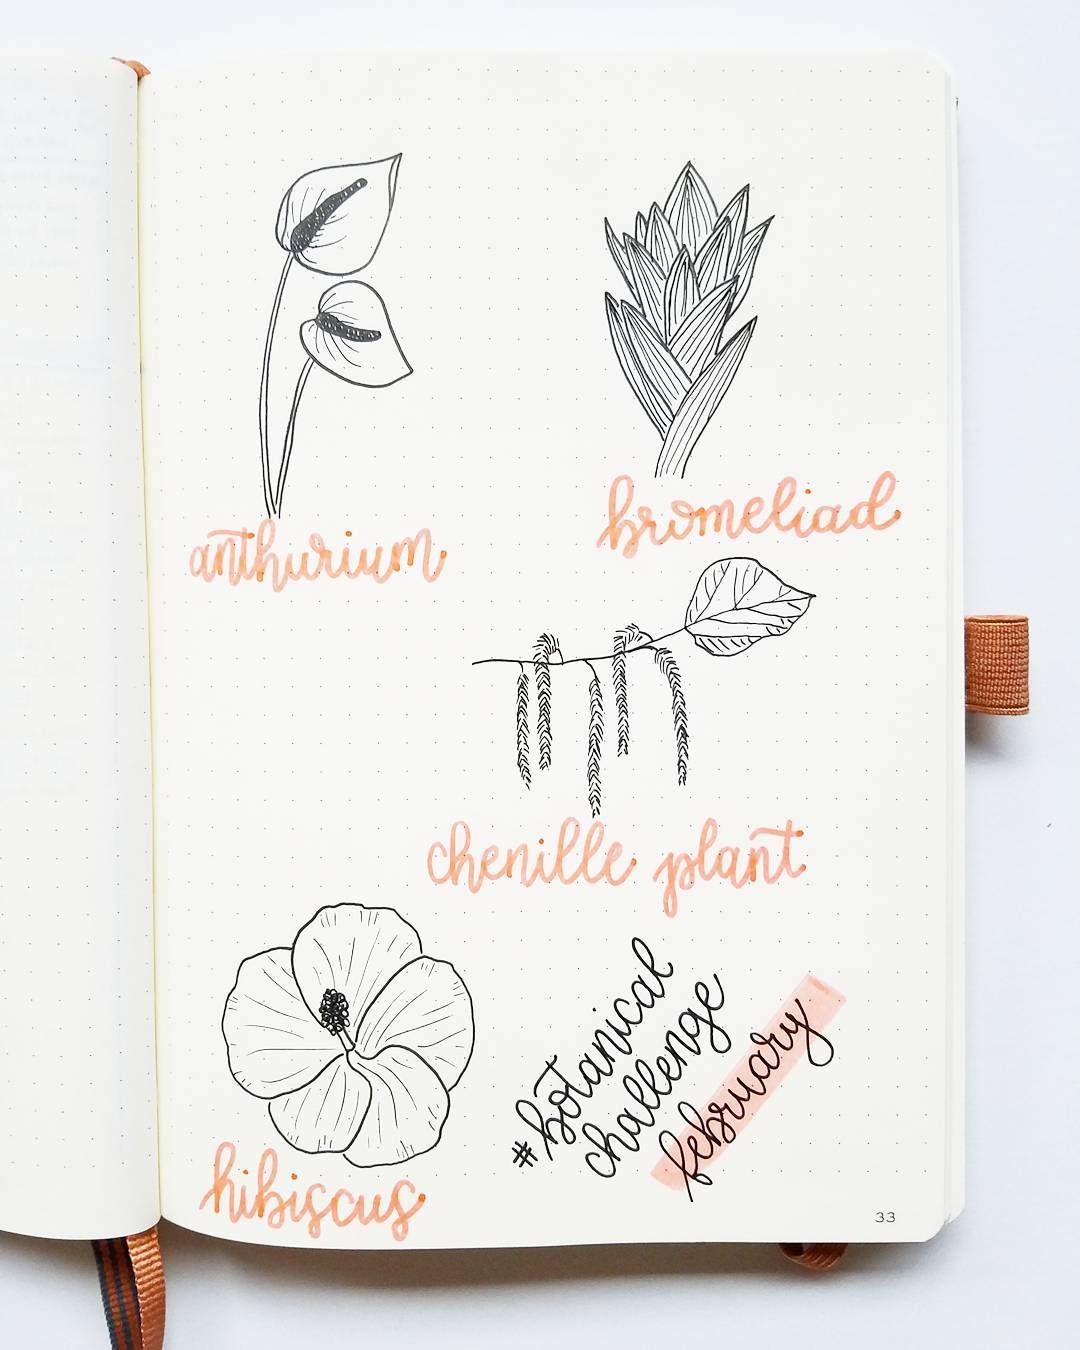 Bullet Journal Drawing Ideas Botanical Drawings Flower Drawings Bromeliad Drawing Anthurium Drawi Bullet Journal Art Flower Drawing Planner Bullet Journal